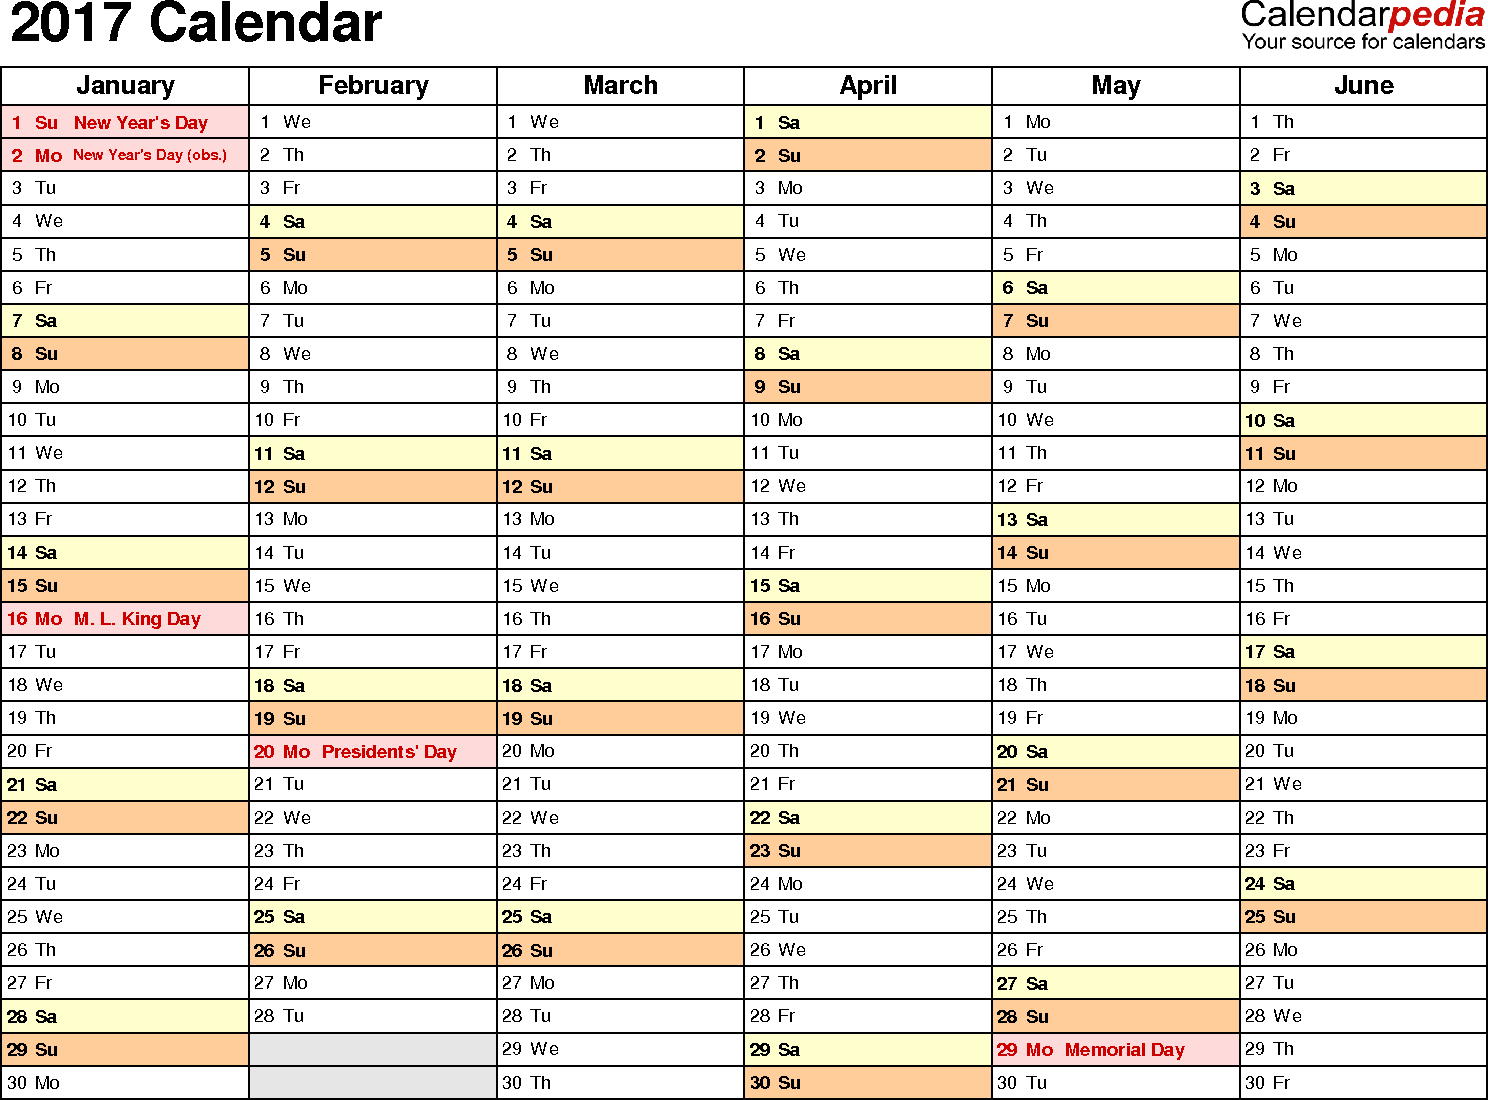 Ediblewildsus  Inspiring  Calendar  Download  Free Printable Excel Templates Xls With Heavenly Template   Calendar For Excel Months Horizontally  Pages Landscape Orientation With Cool How To Fill Down In Excel Also In Excel A Number Can Contain The Characters In Addition Excel Checklist And How Do You Sort In Excel As Well As Excel Best Fit Line Additionally Date Formula In Excel From Calendarpediacom With Ediblewildsus  Heavenly  Calendar  Download  Free Printable Excel Templates Xls With Cool Template   Calendar For Excel Months Horizontally  Pages Landscape Orientation And Inspiring How To Fill Down In Excel Also In Excel A Number Can Contain The Characters In Addition Excel Checklist From Calendarpediacom